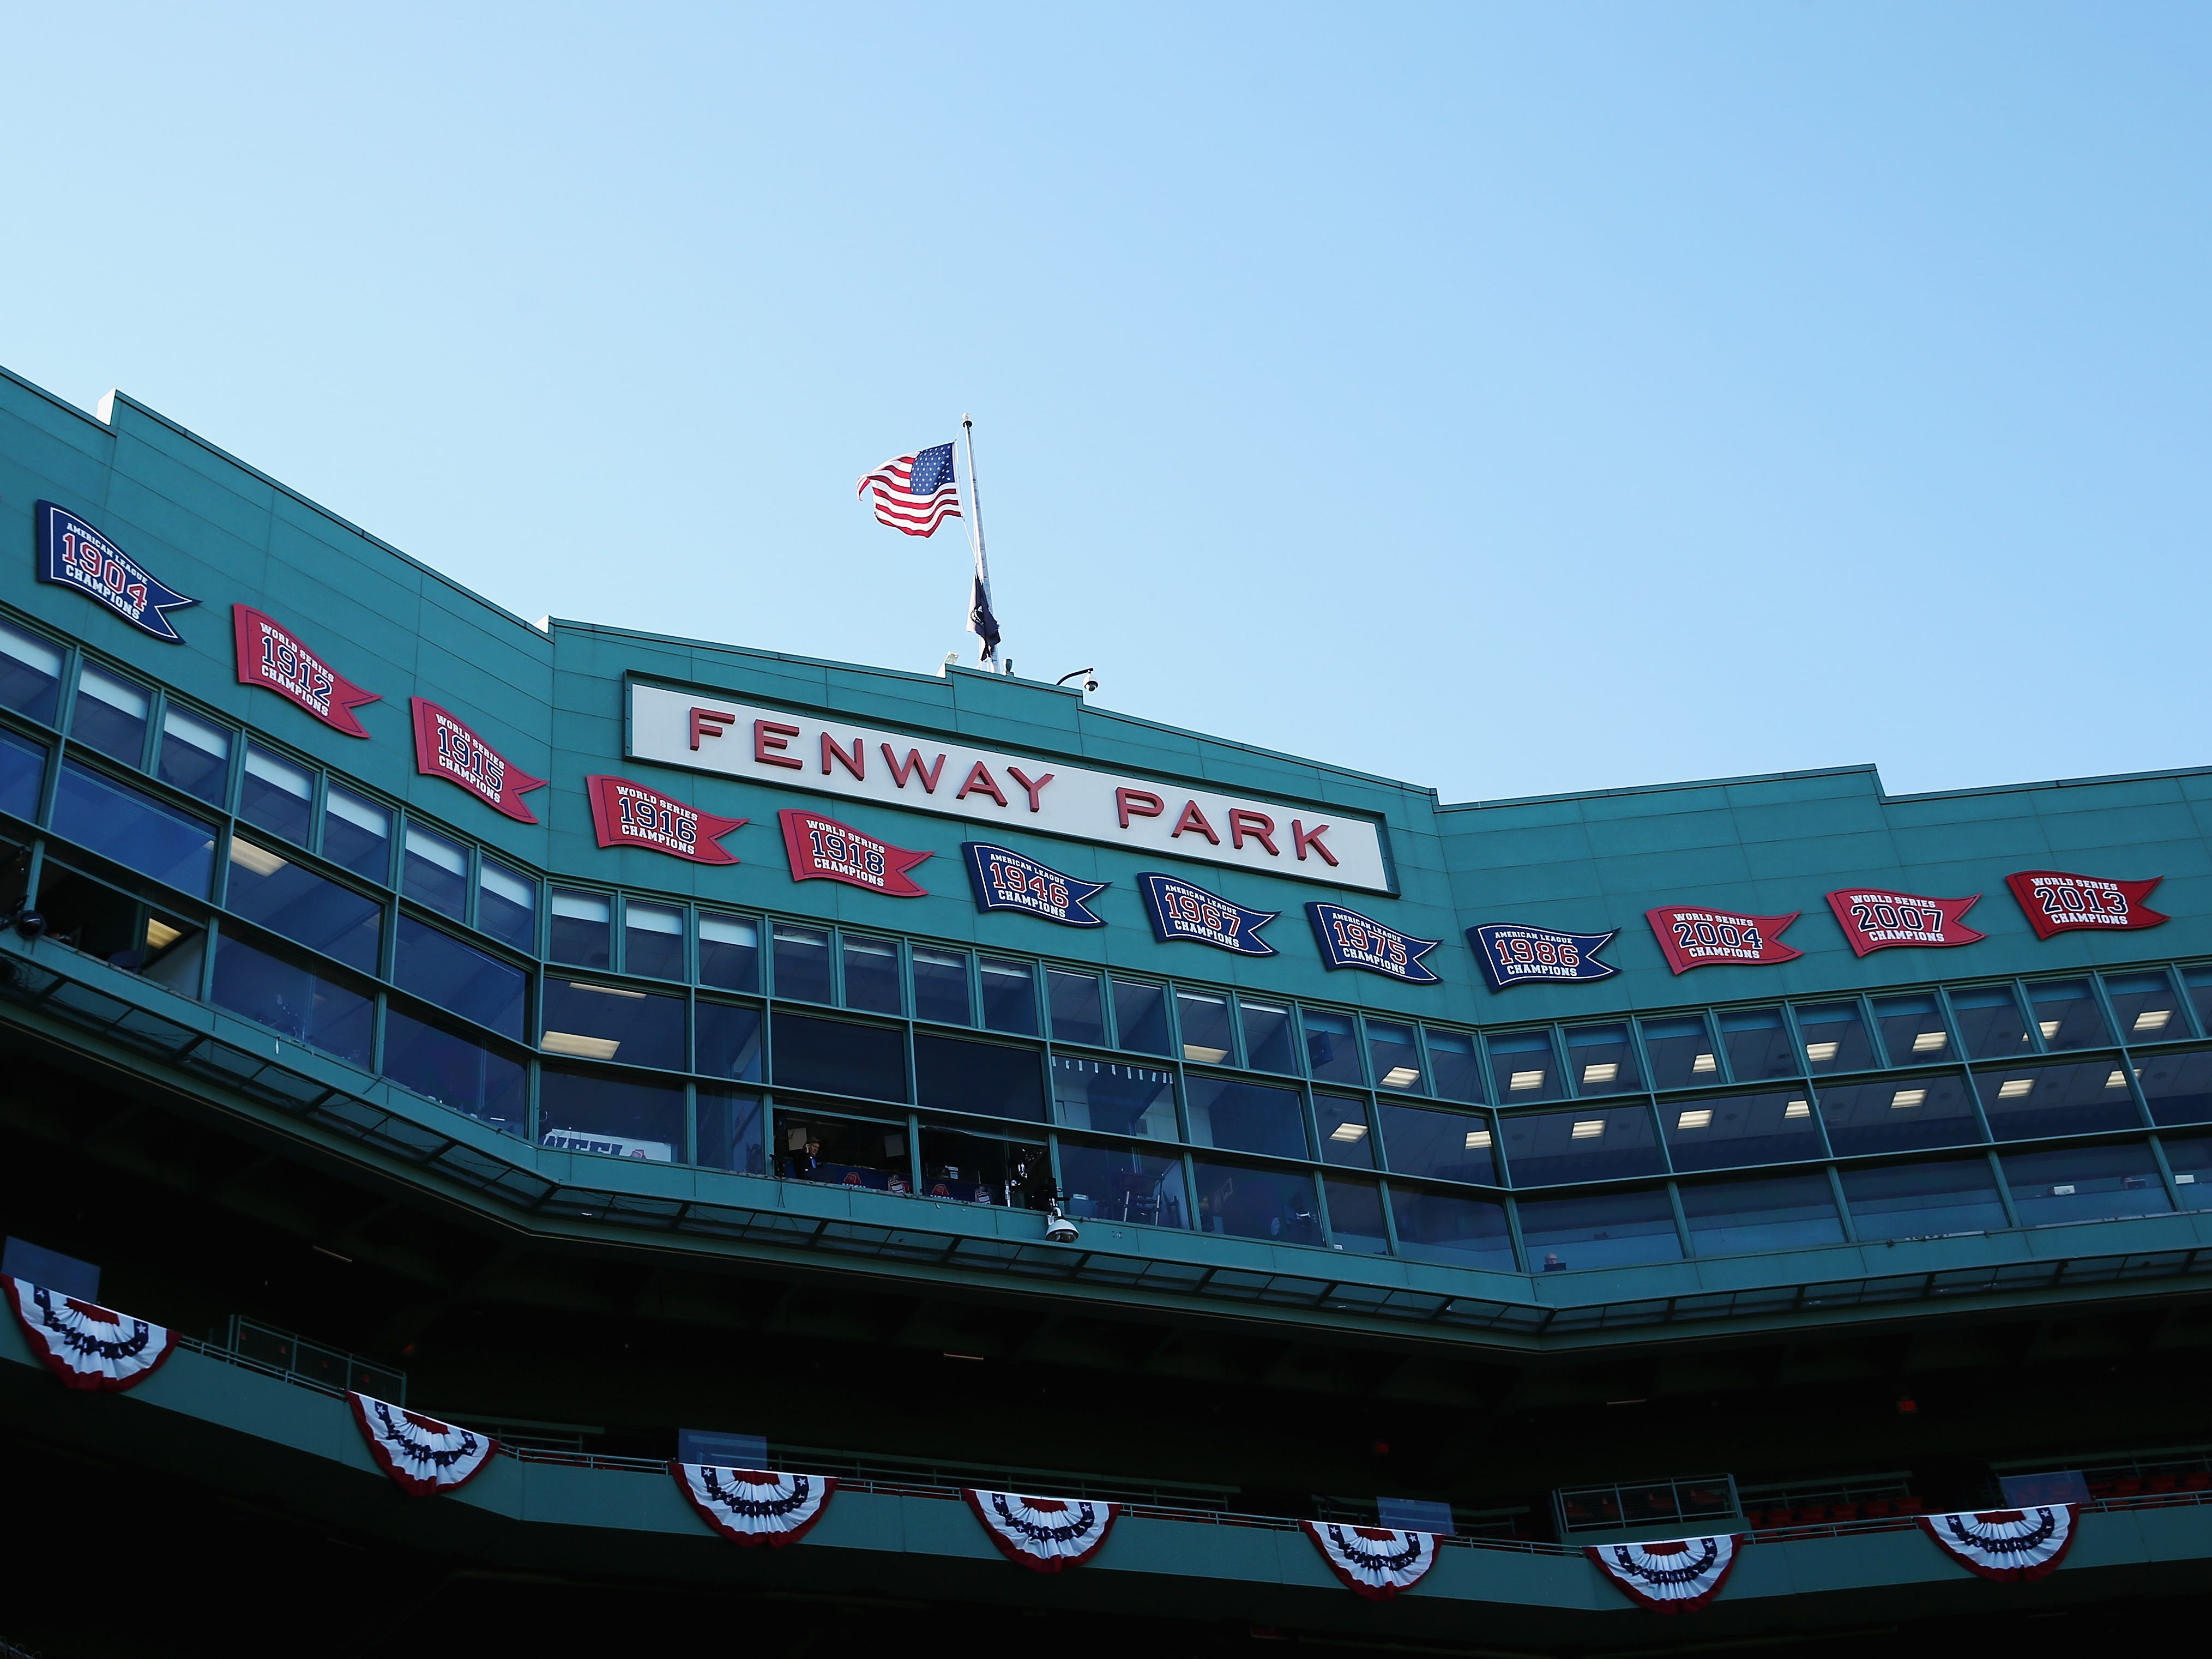 Fenway Park, home of the Red Sox and Game 1 of the World Series.